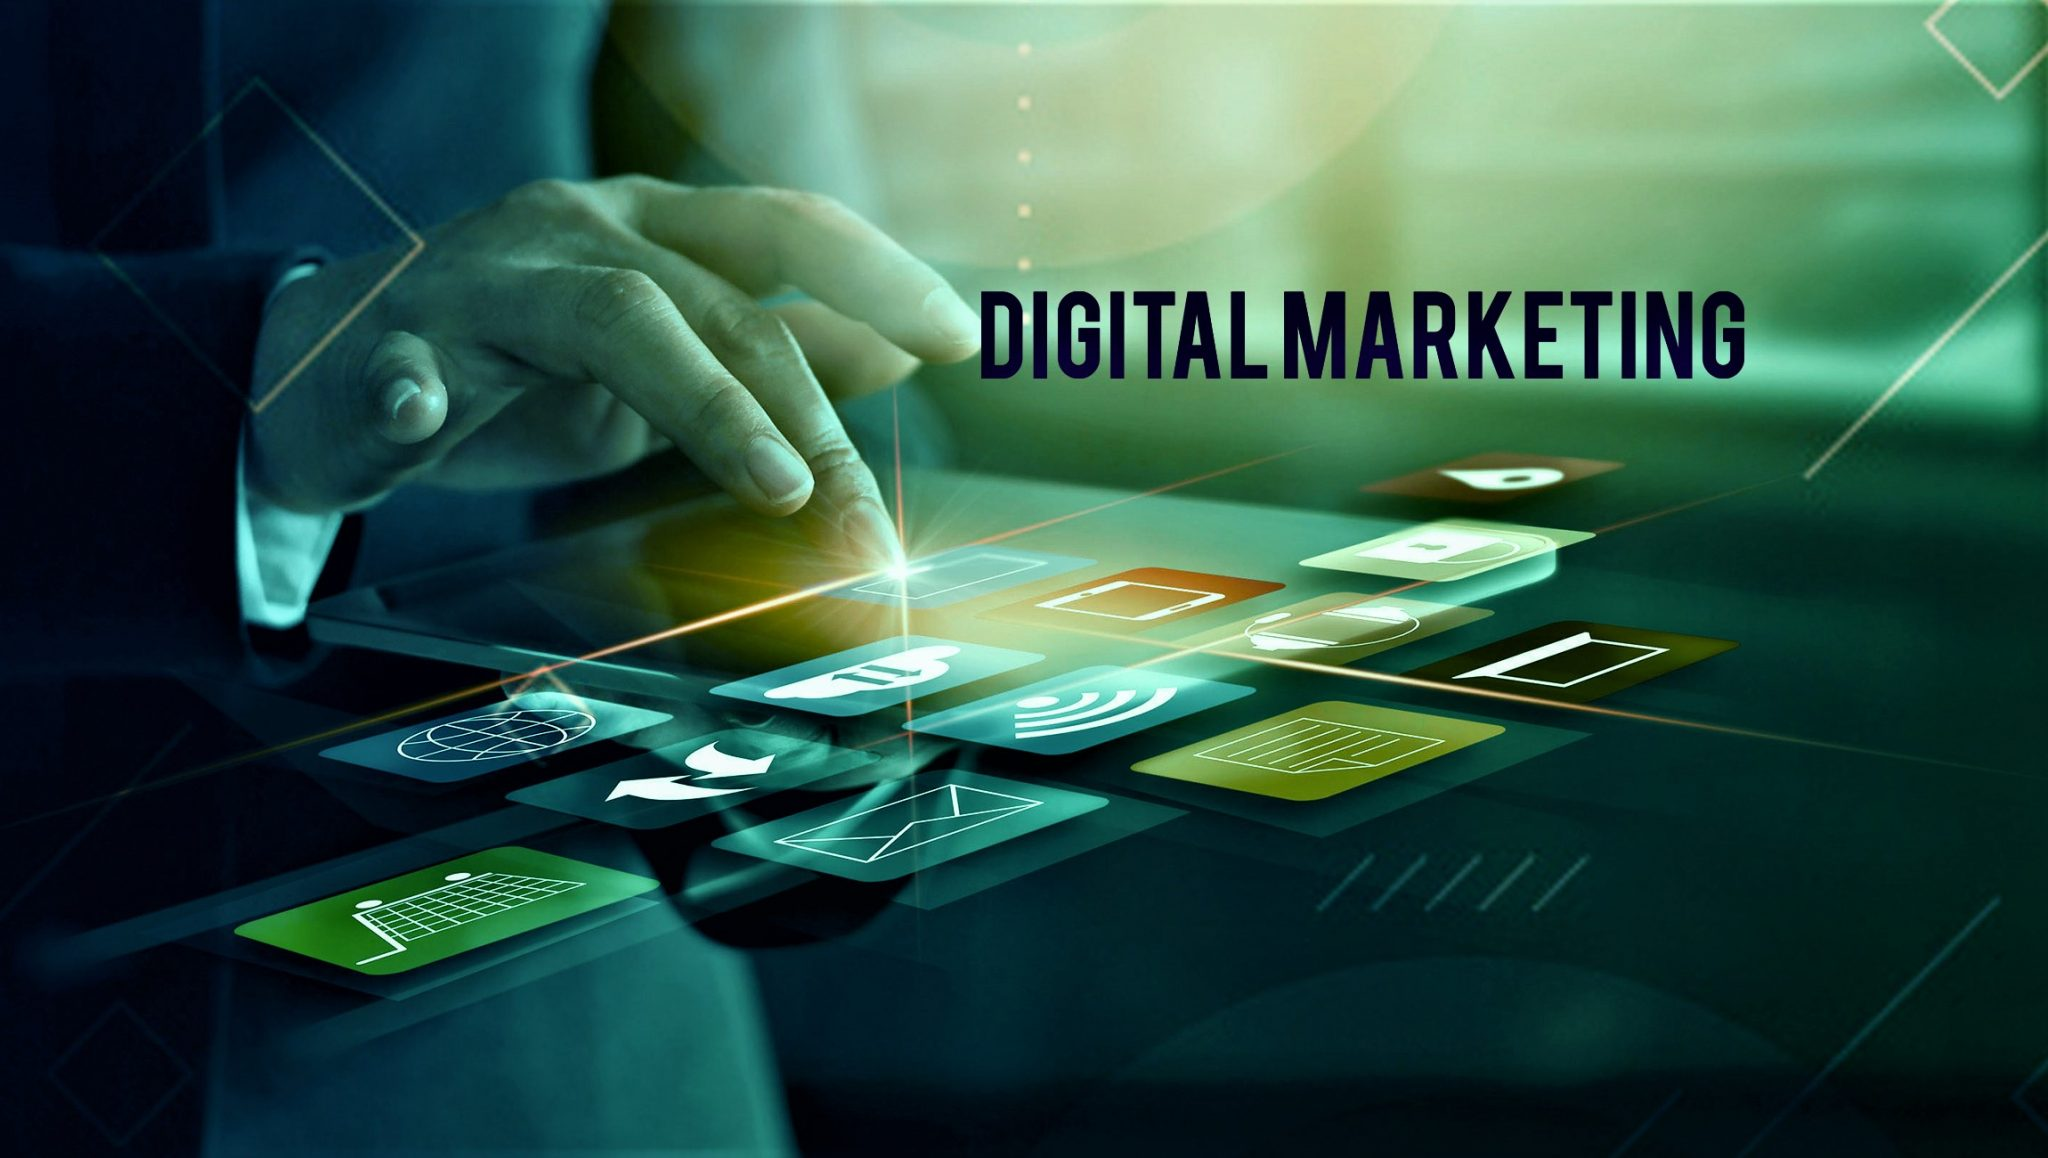 Digital Marketing Course in Kurukshetra digital marketing course in kurukshetra Digital Marketing Course in Kurukshetra with live project Accessibility Is the Missing Link in Your Digital Marketing Strategy1